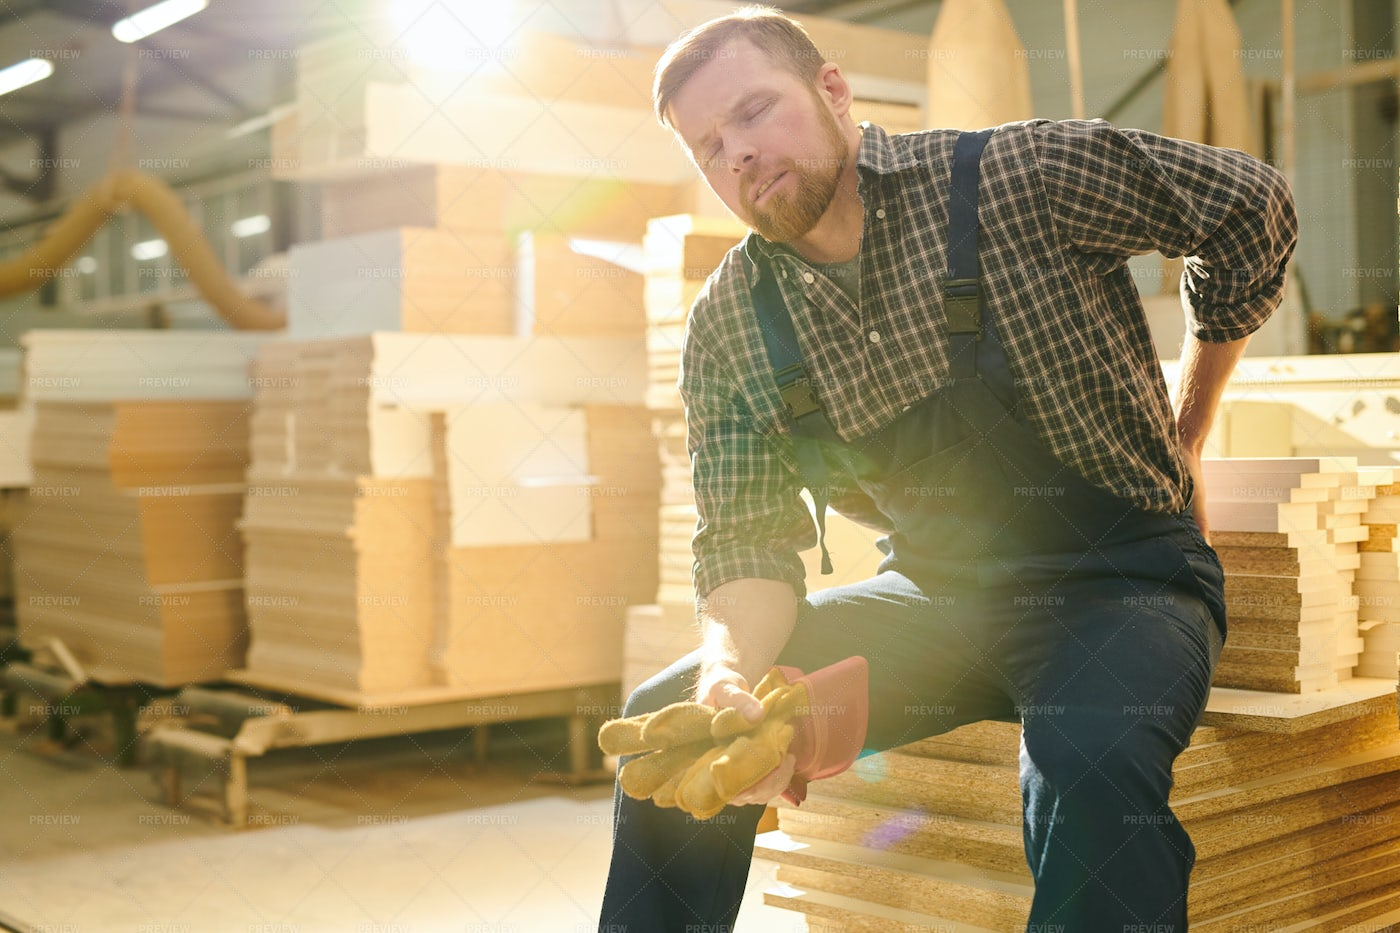 Manual Worker Having Pain In Back: Stock Photos